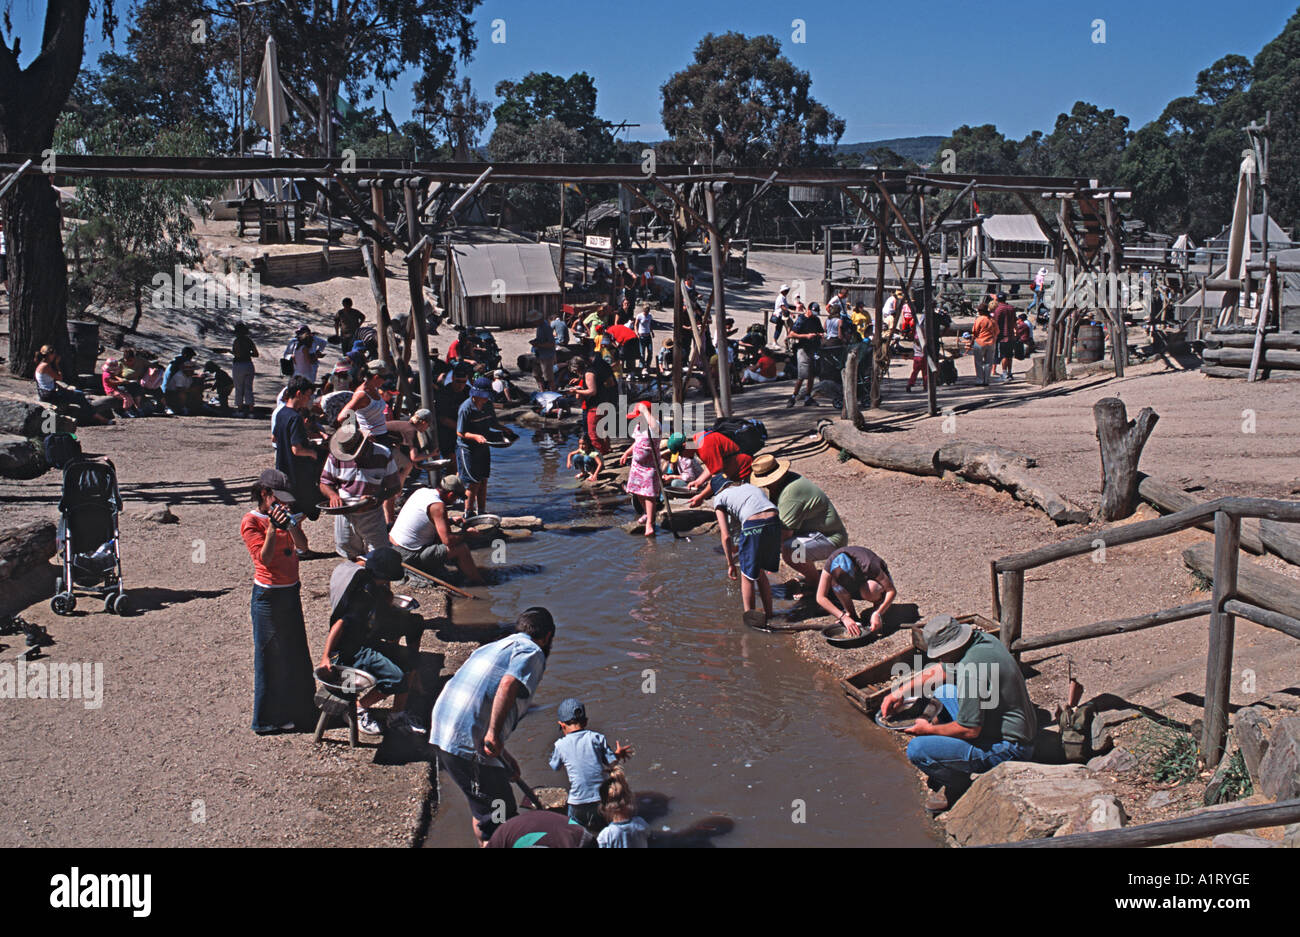 Visitors trying their hands at gold prospecting at Sovereign Hill theme park attraction Ballarat Victoria Australia - Stock Image